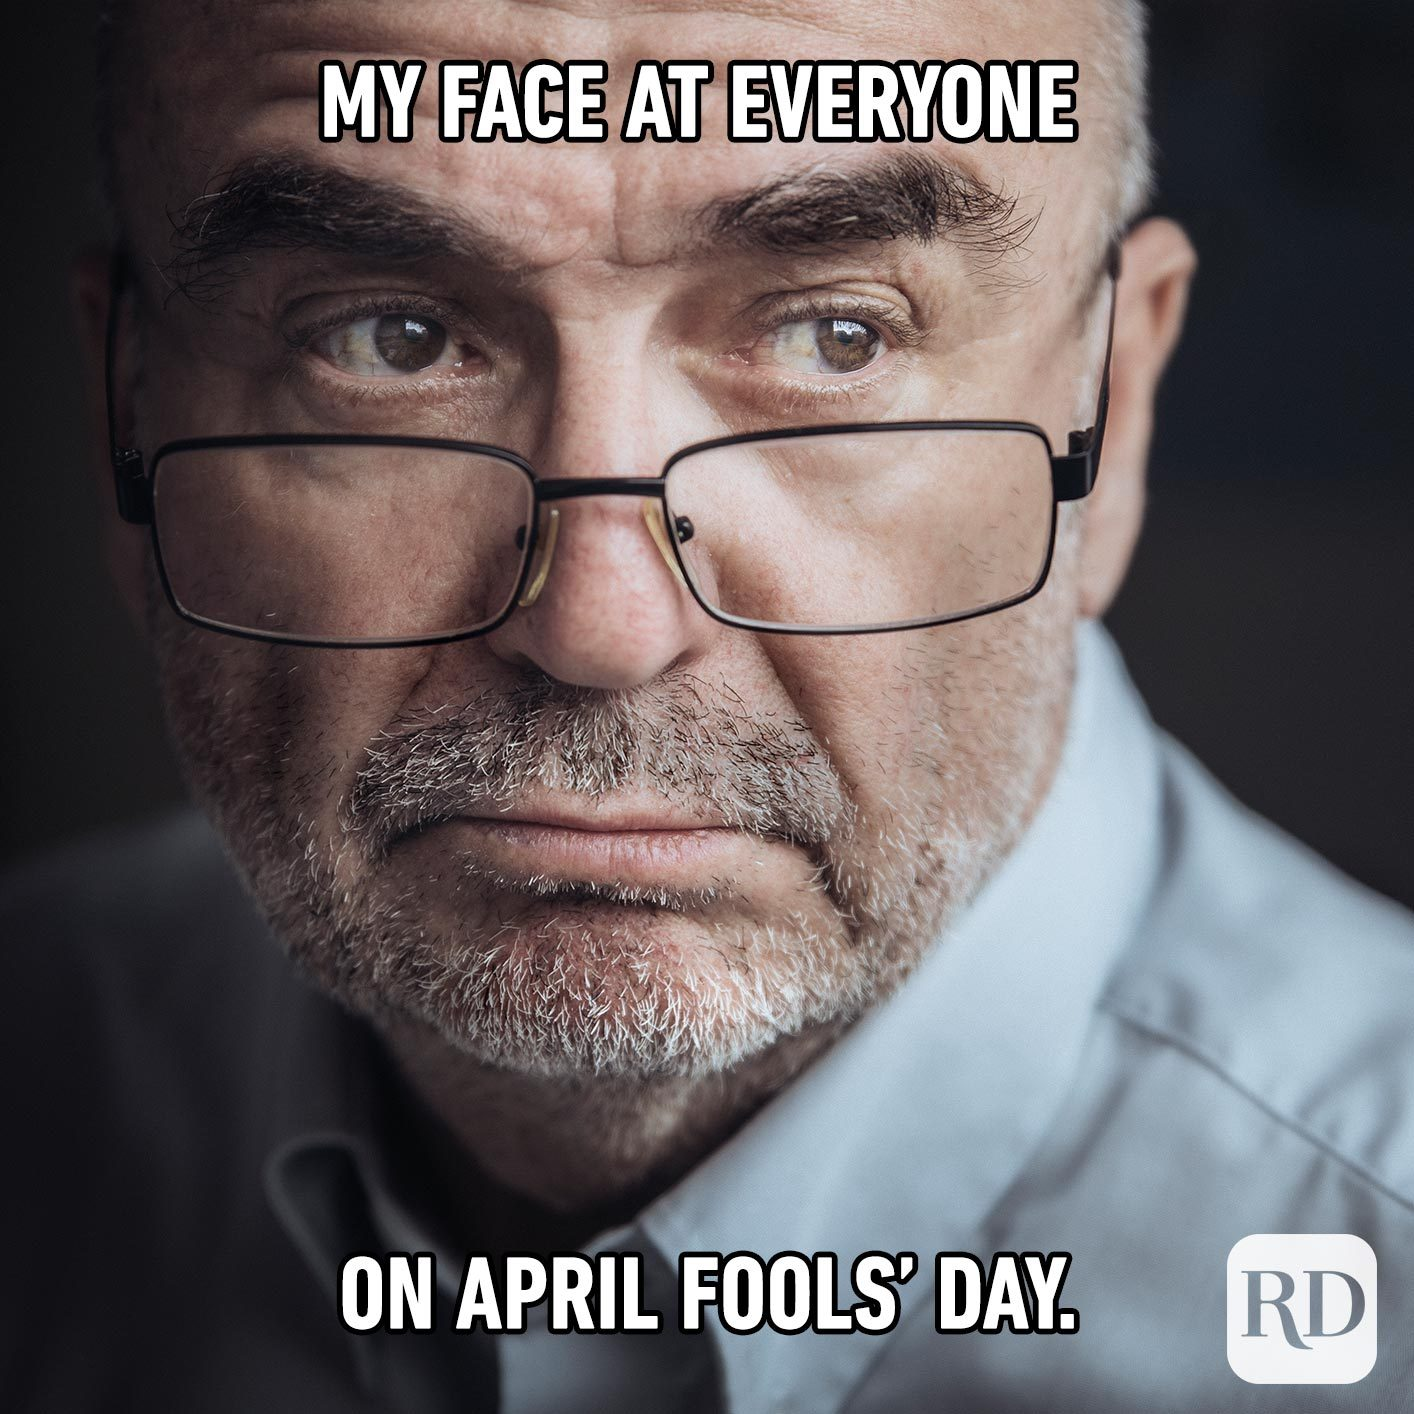 Man frowning and looking very serious. Meme text: My face at everyone on April Fools' Day.